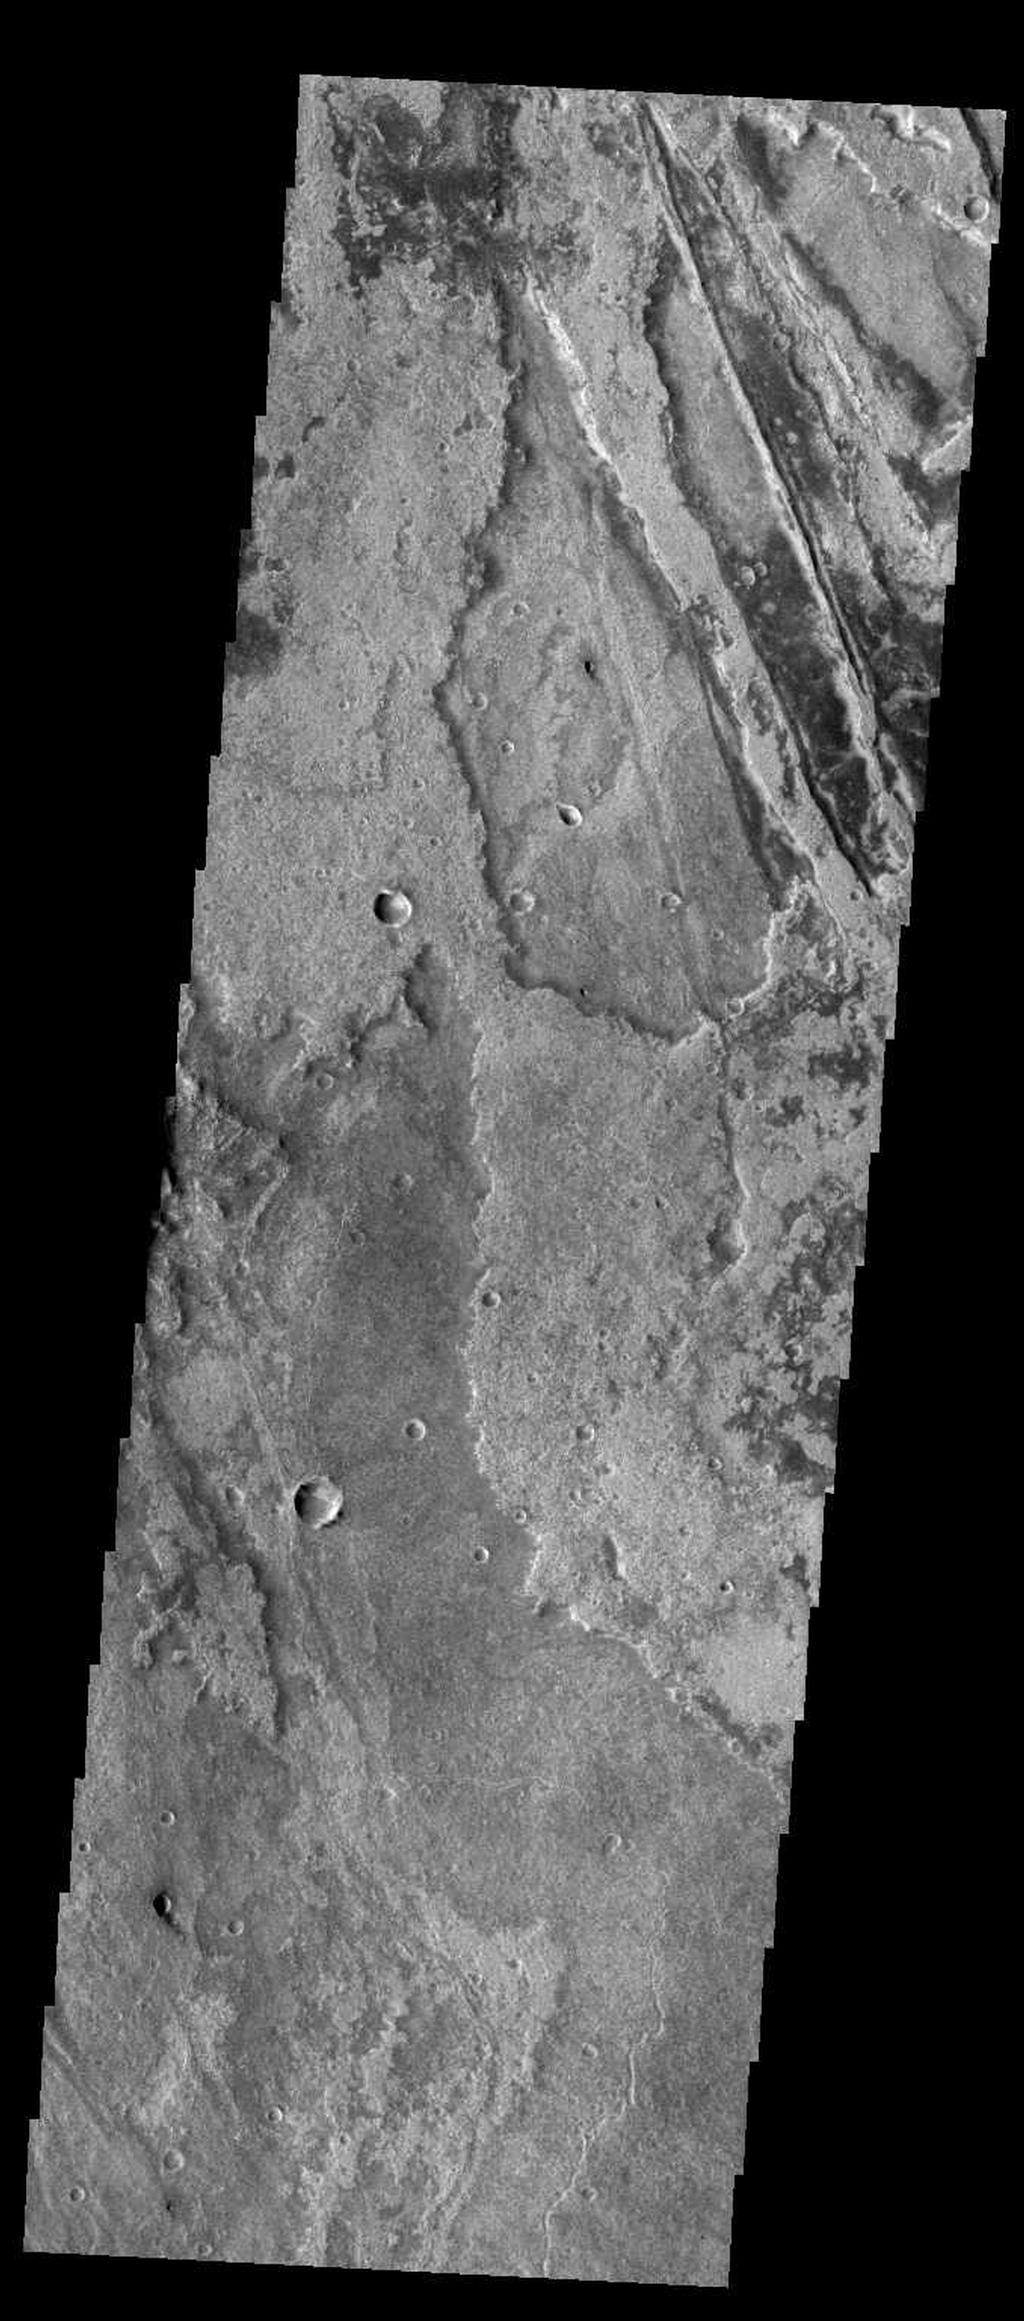 Just as on Earth, volcanism and tectonism are found together on Mars. Here is an example: the ridges and fractures of Claritas Fossae are affecting or perhaps hosting the volcanic flows of Solis Planum.